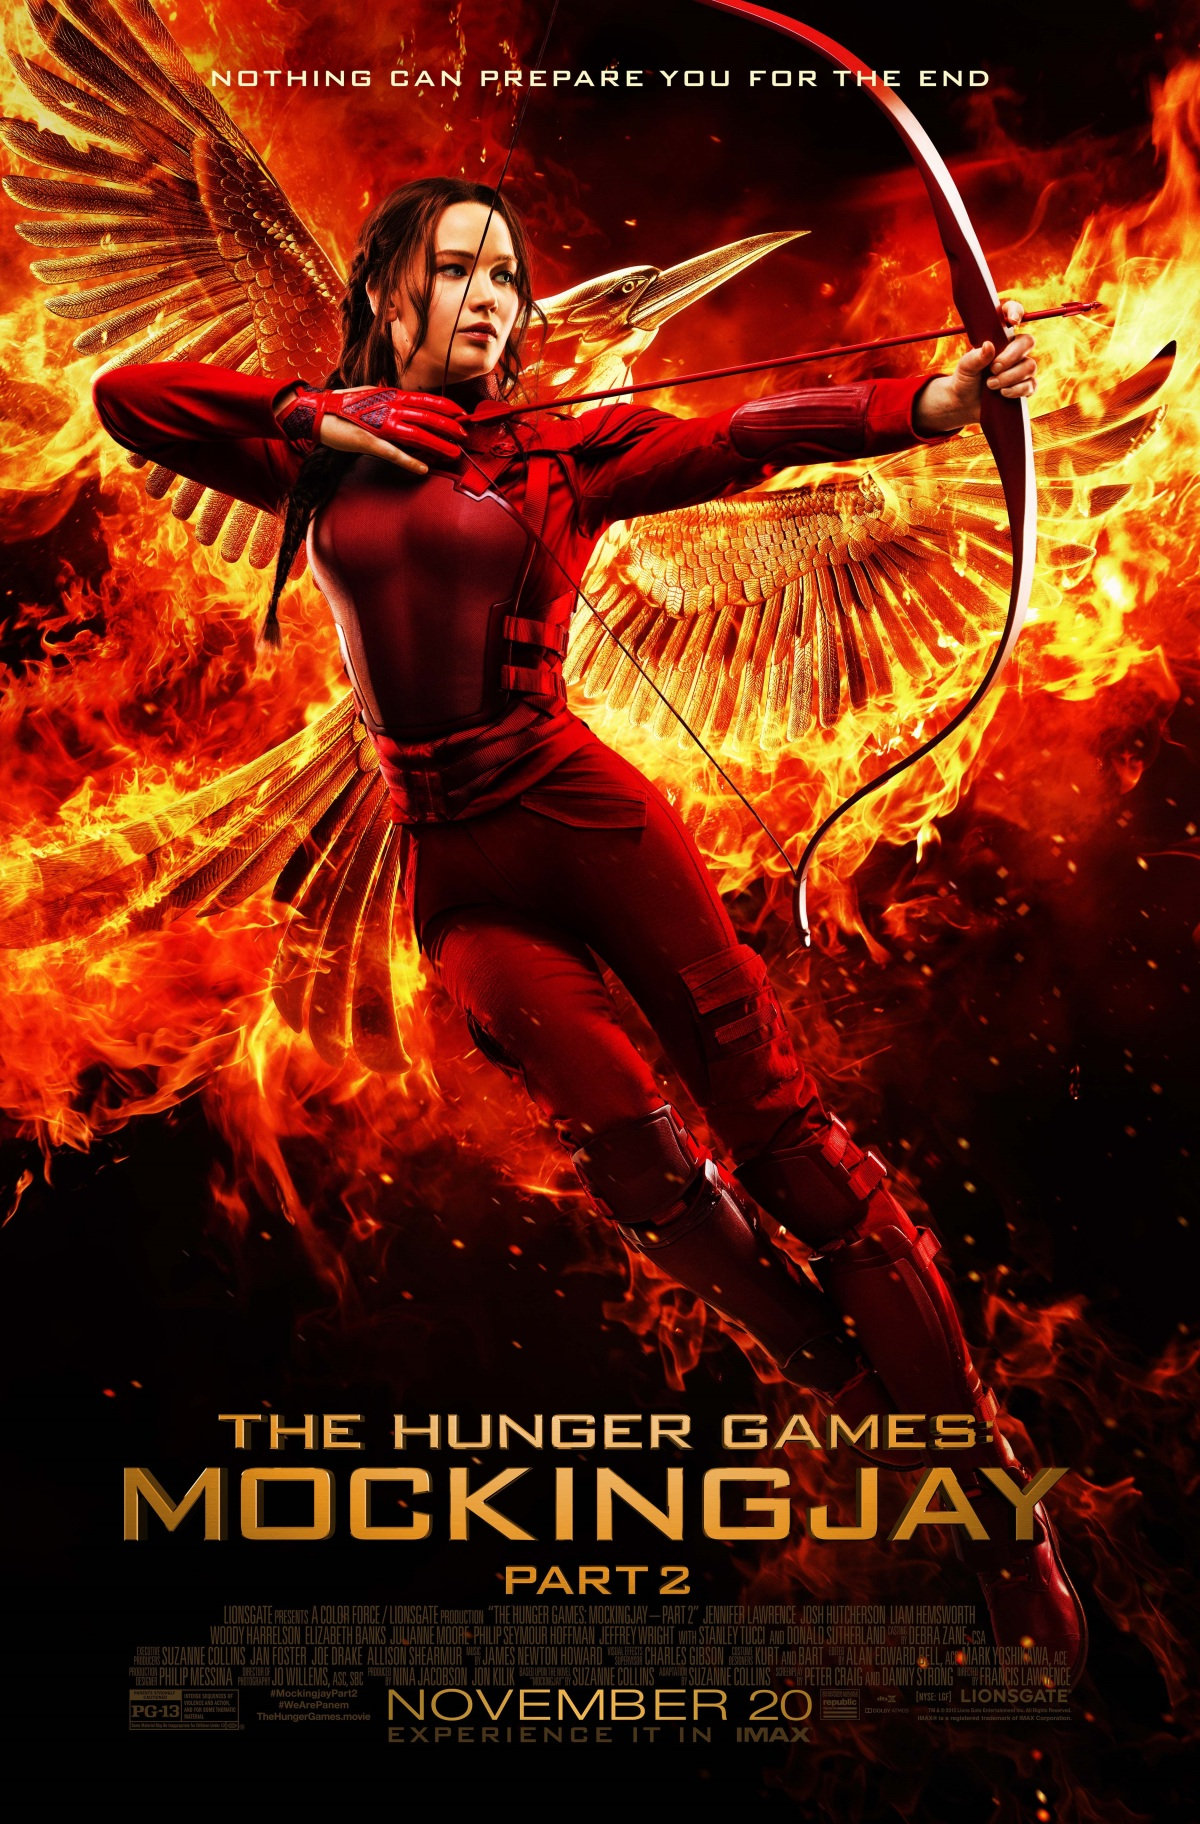 mockingjay-part-2-final-poster